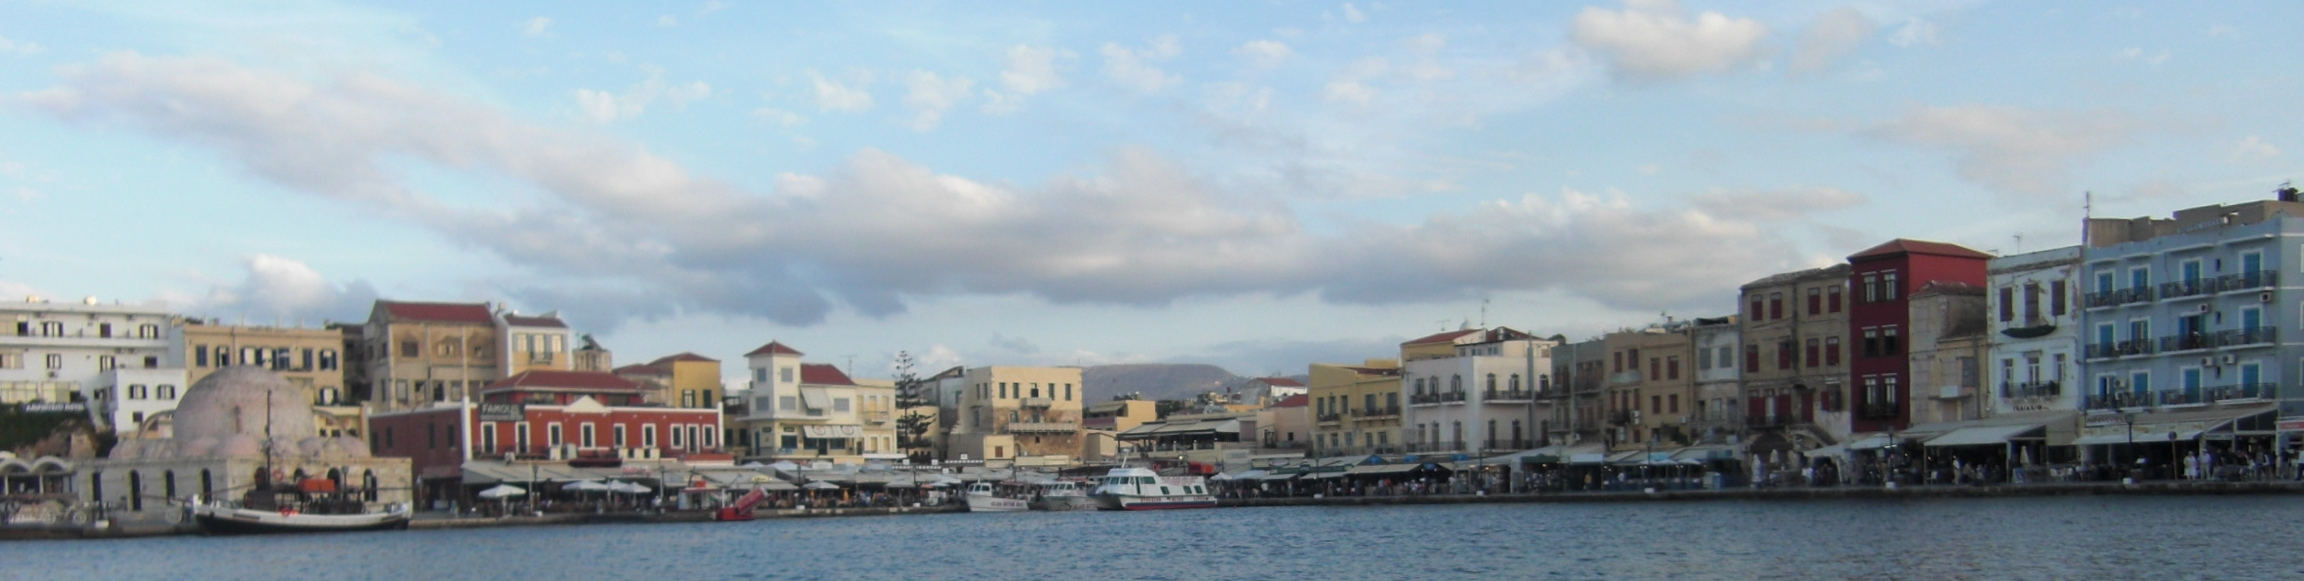 01_0_2_Chania_Seaside